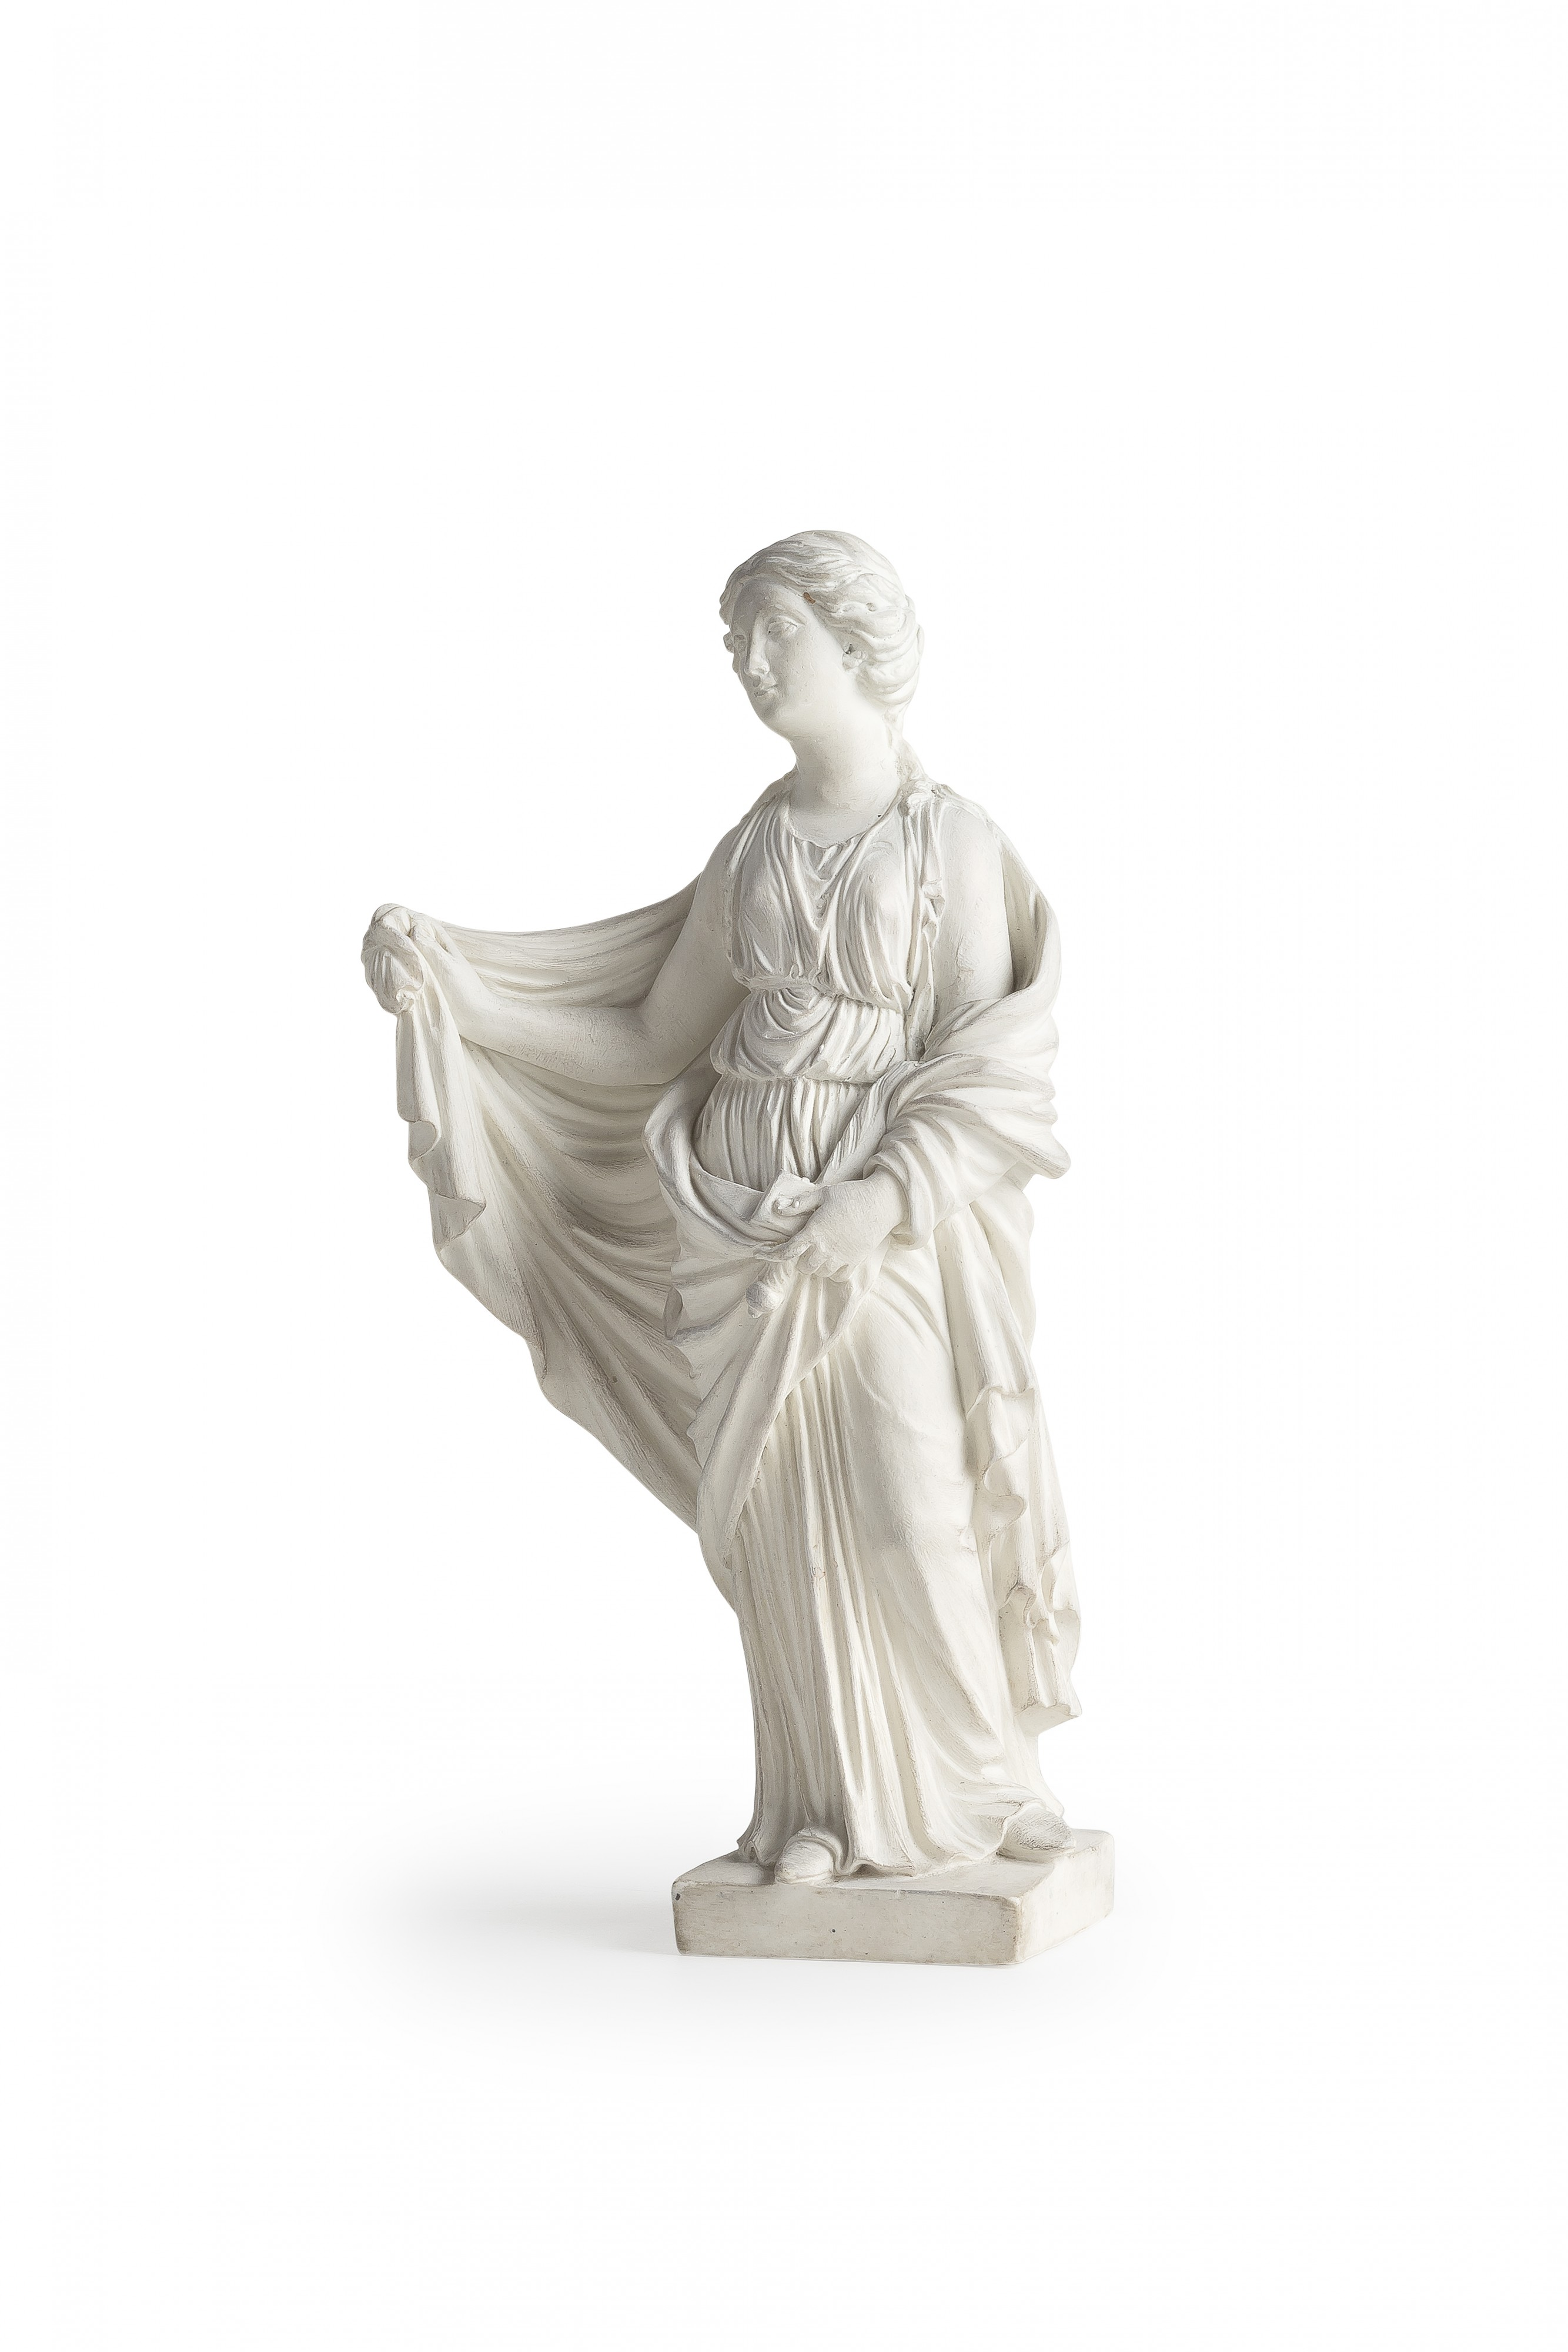 Naples, 18th century. Figures like this might be modelled on pieces used in ancient frescoes from the Roman cities destroyed by Vesuvius in 79 AD. The statuette was estimated at £1 200-1 400 and was sold for £2 125.